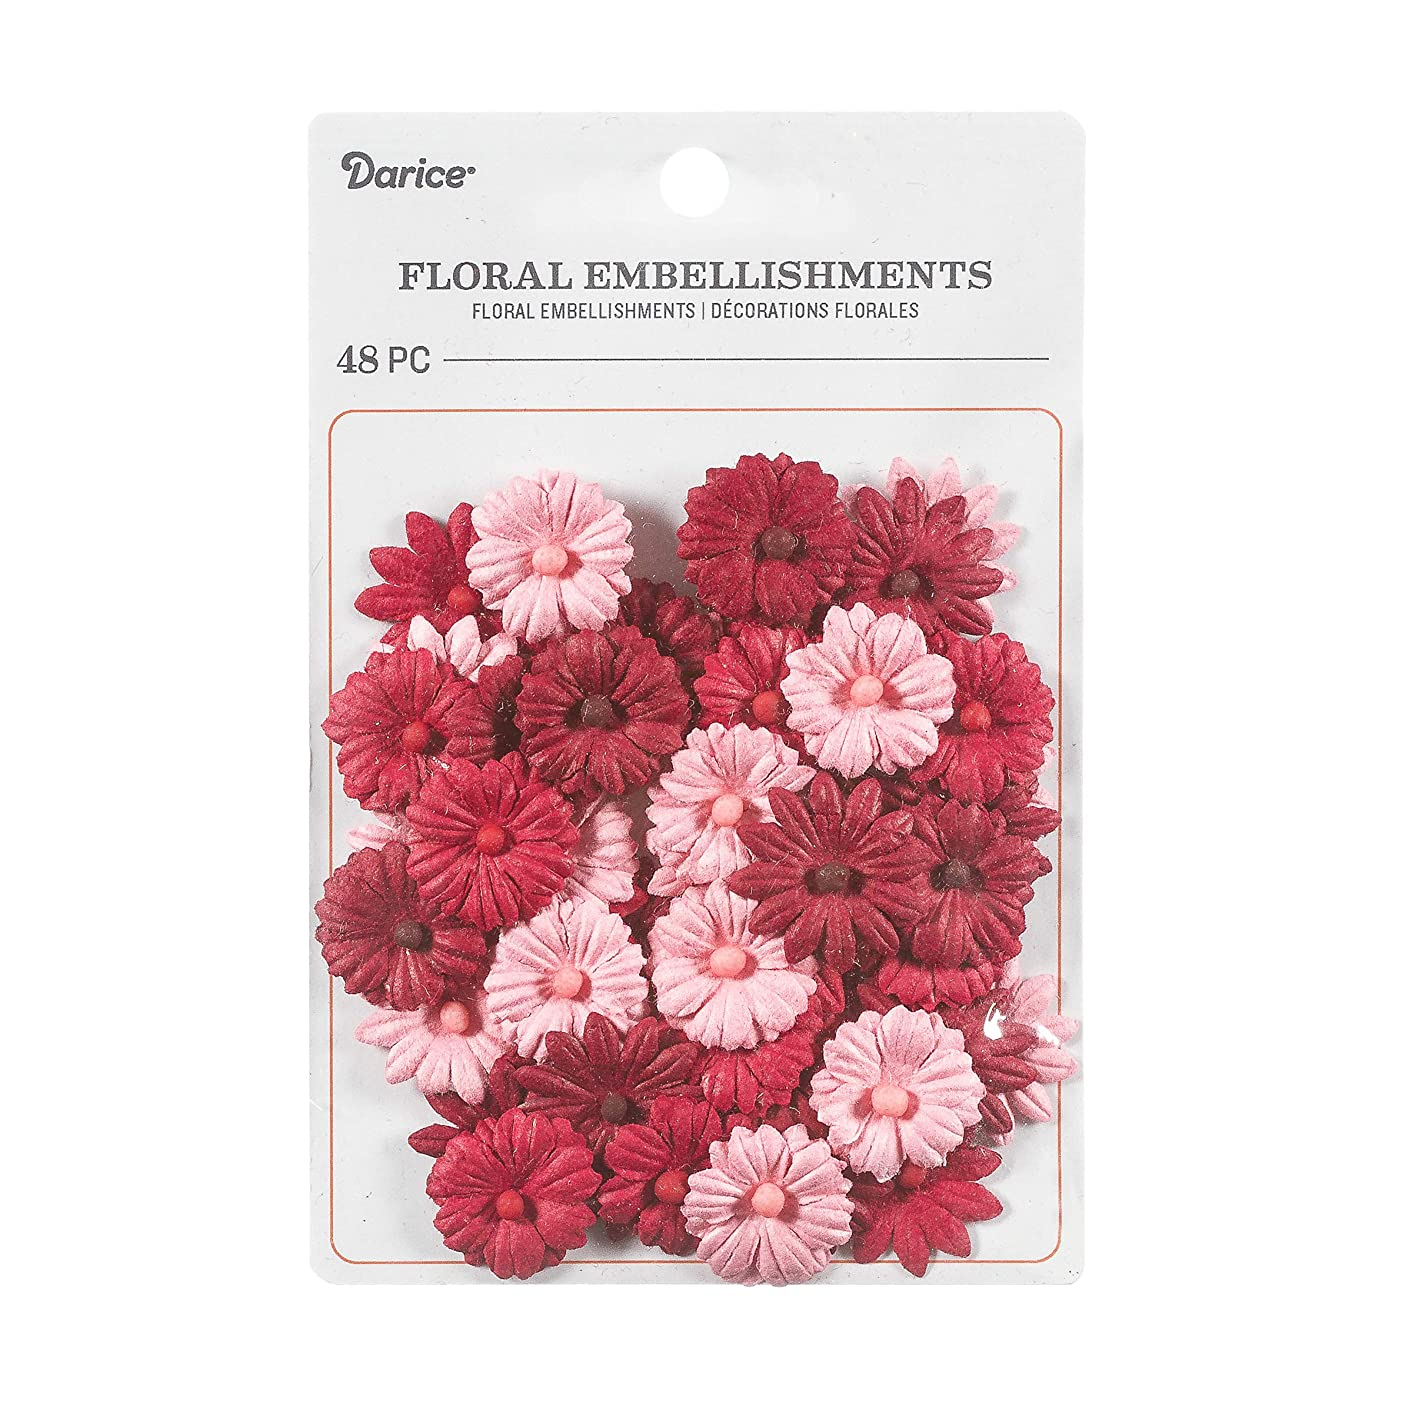 Darice 30062025 Button Daisy Floral Embellishment: Red/Pink, 0.75 in, 48 Pack, Assorted